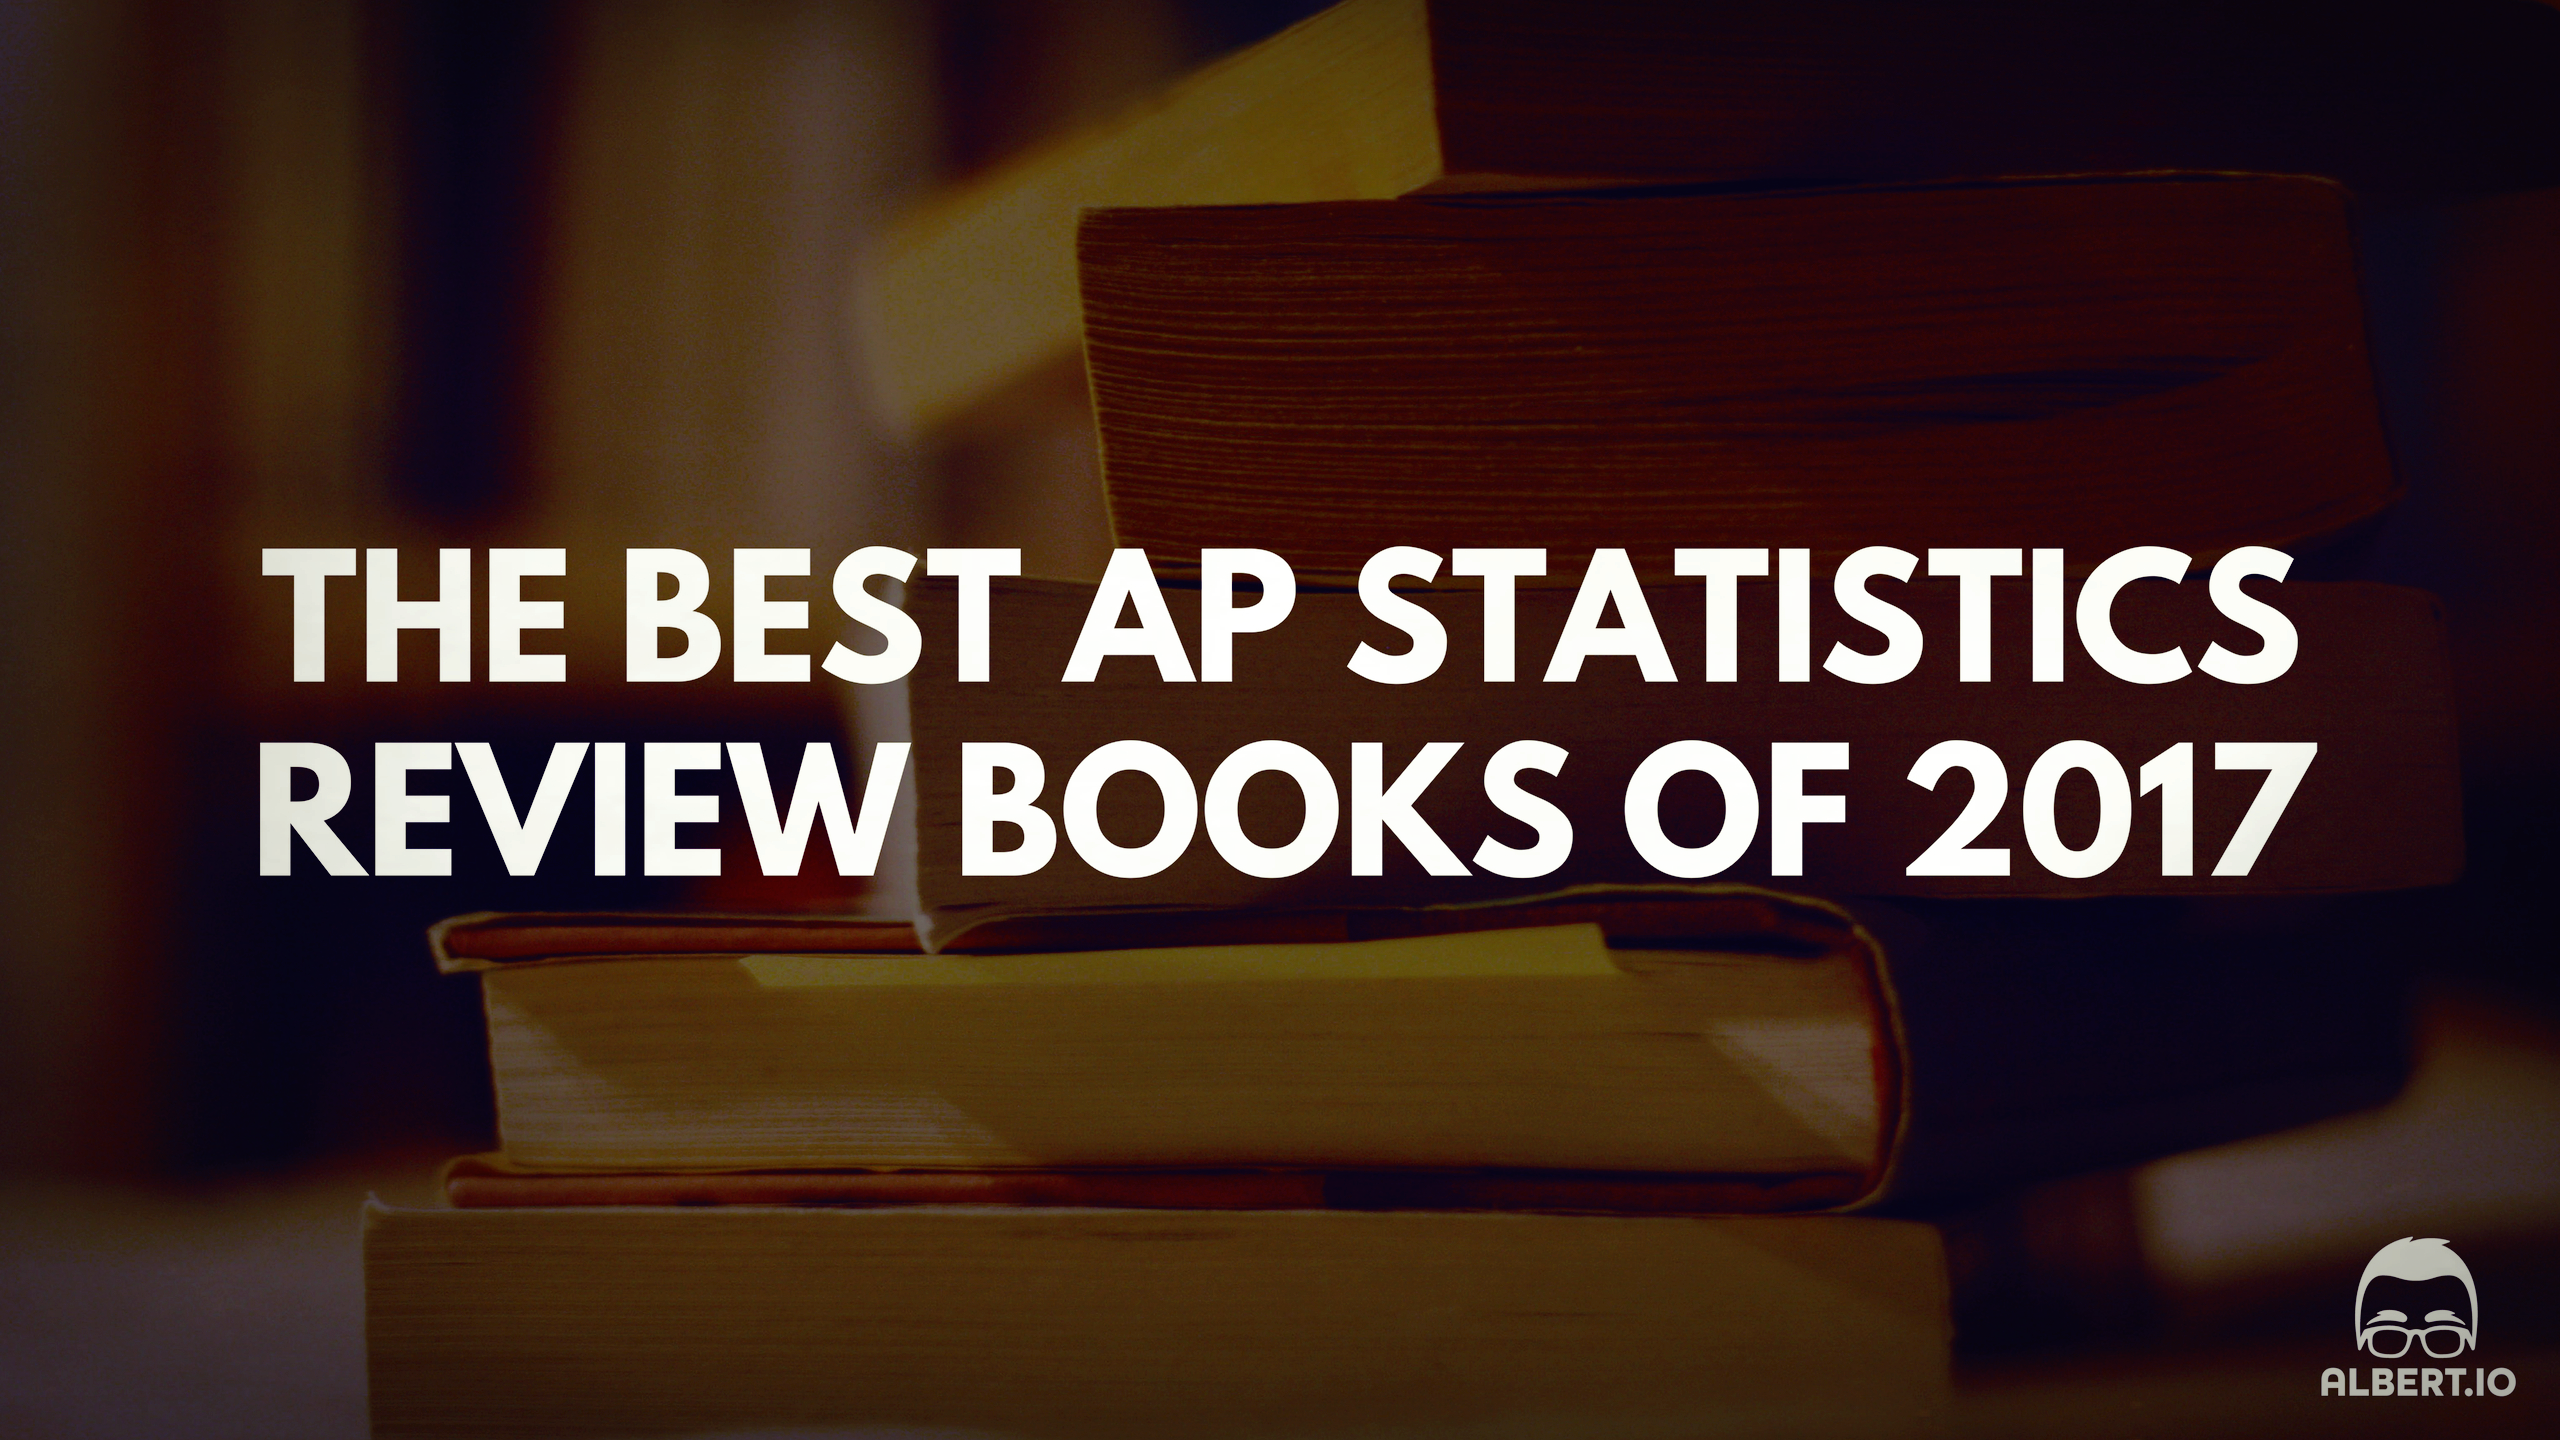 Best AP Statistics Review Books of 2017